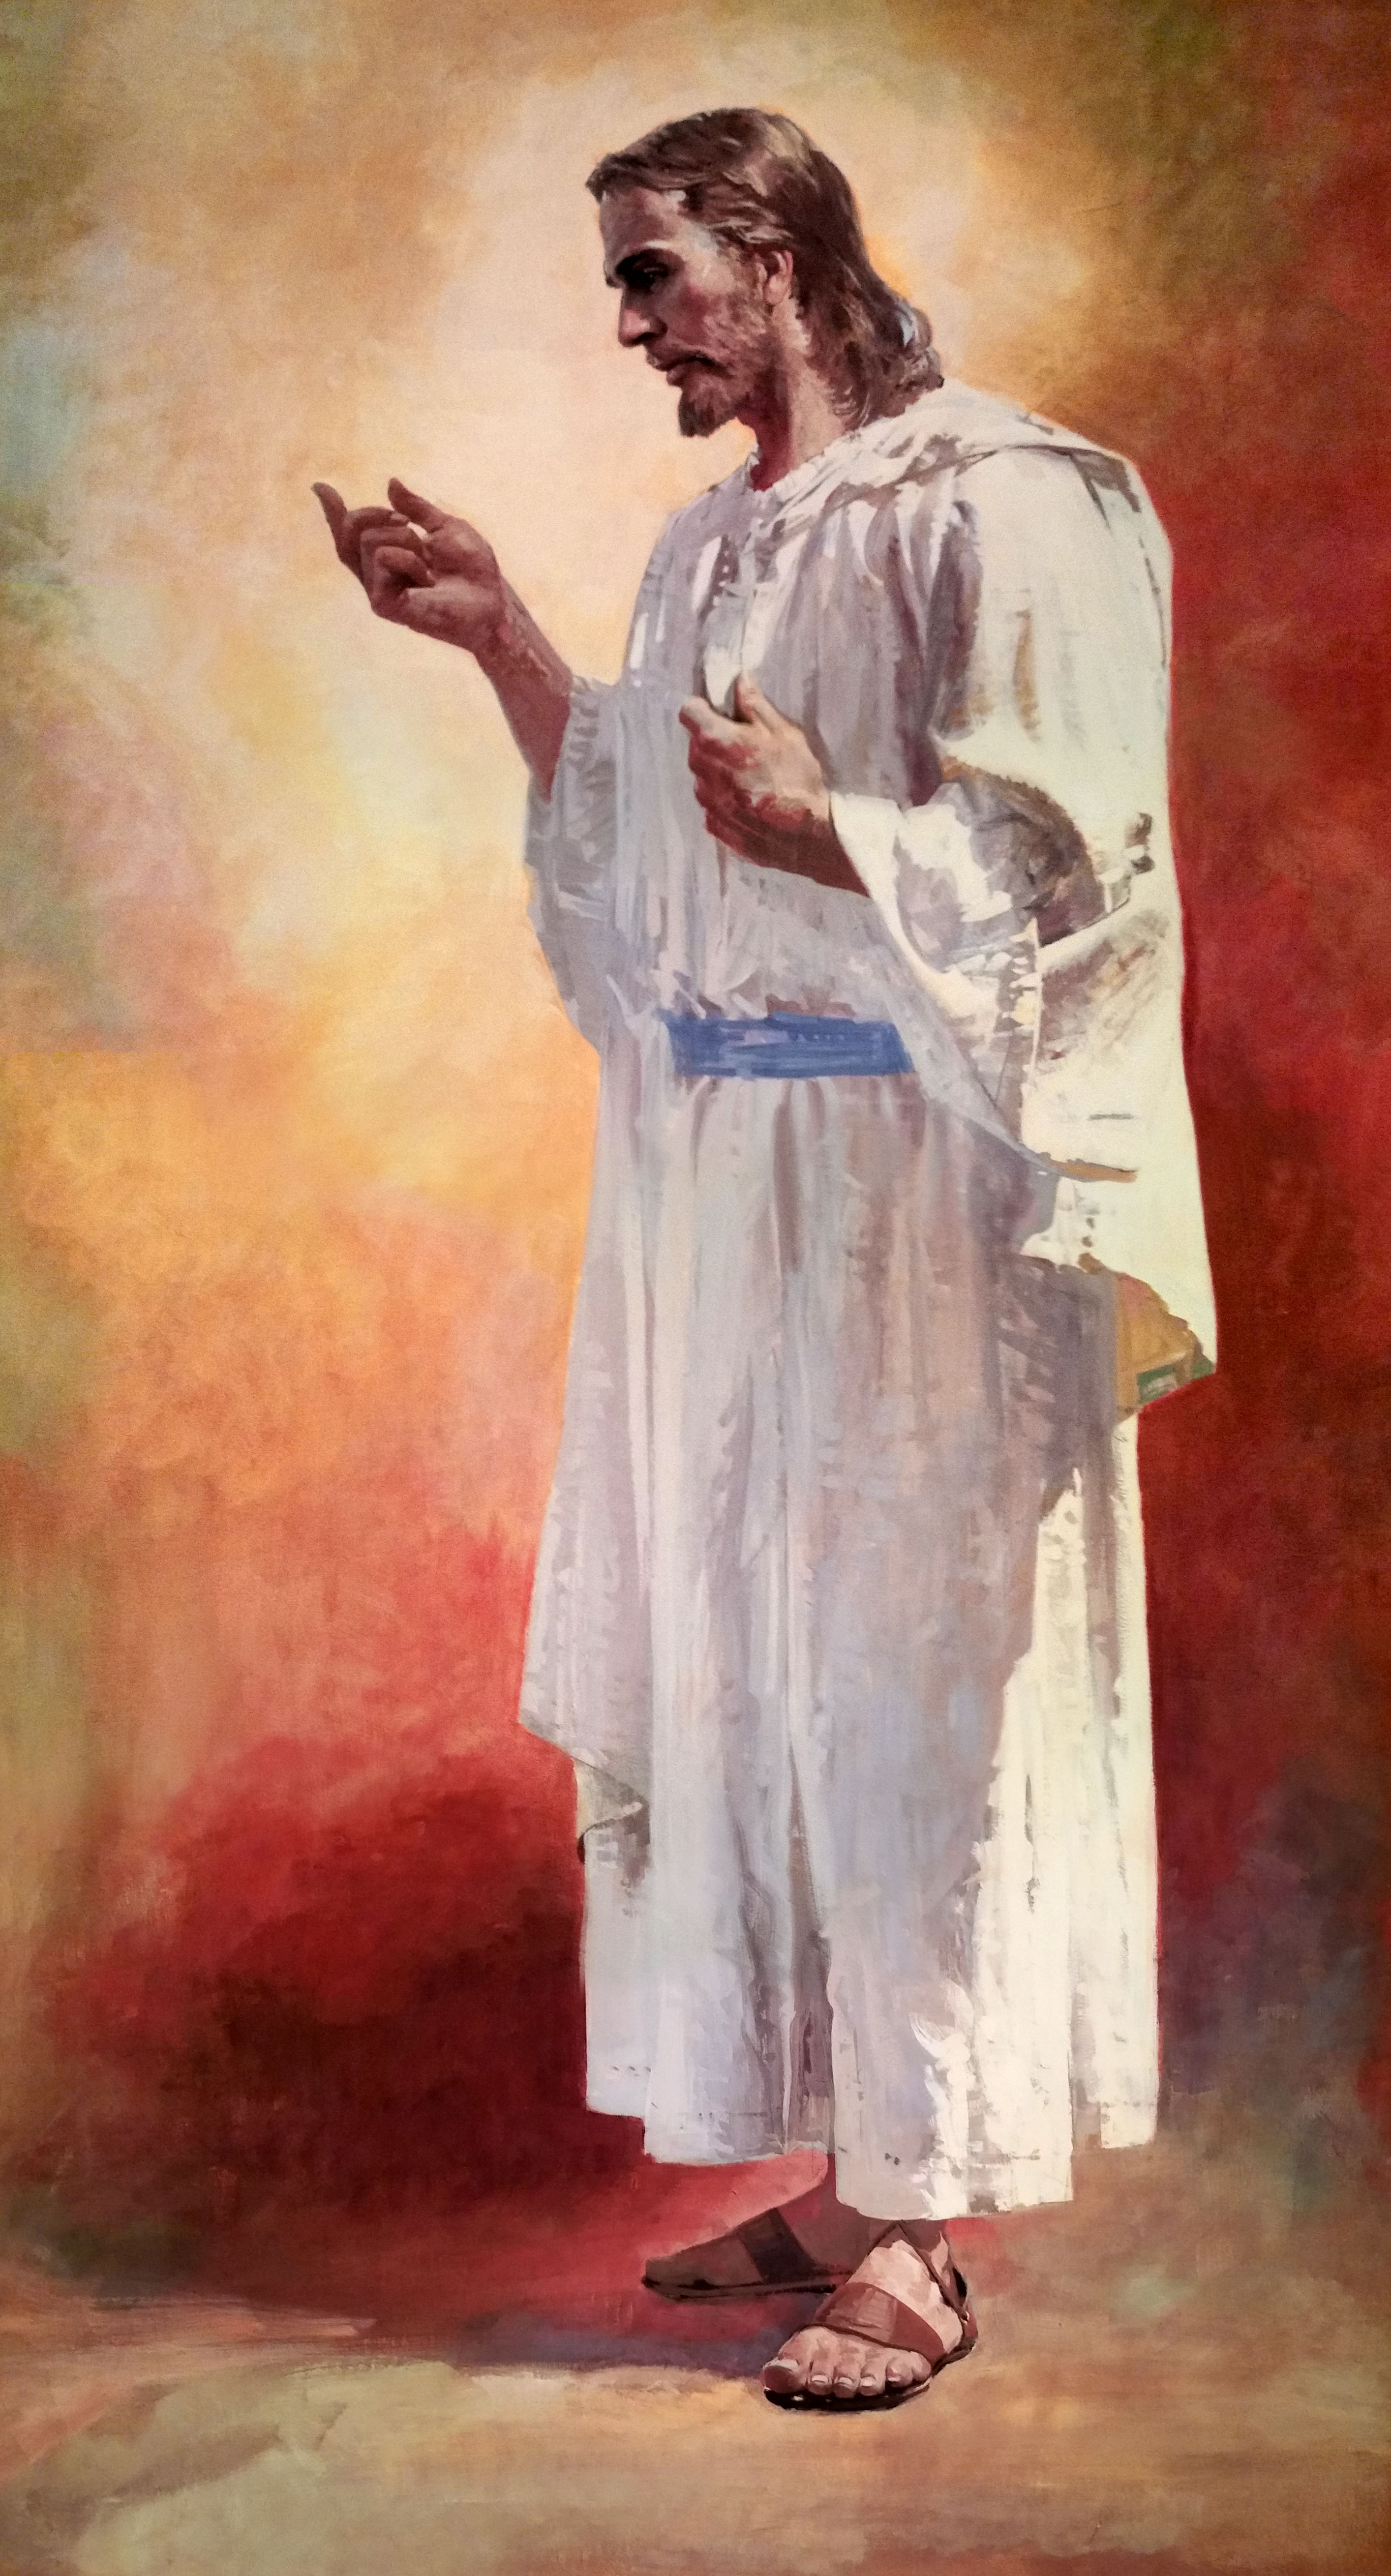 Harry Anderson With Images Pictures Of Jesus Christ Jesus